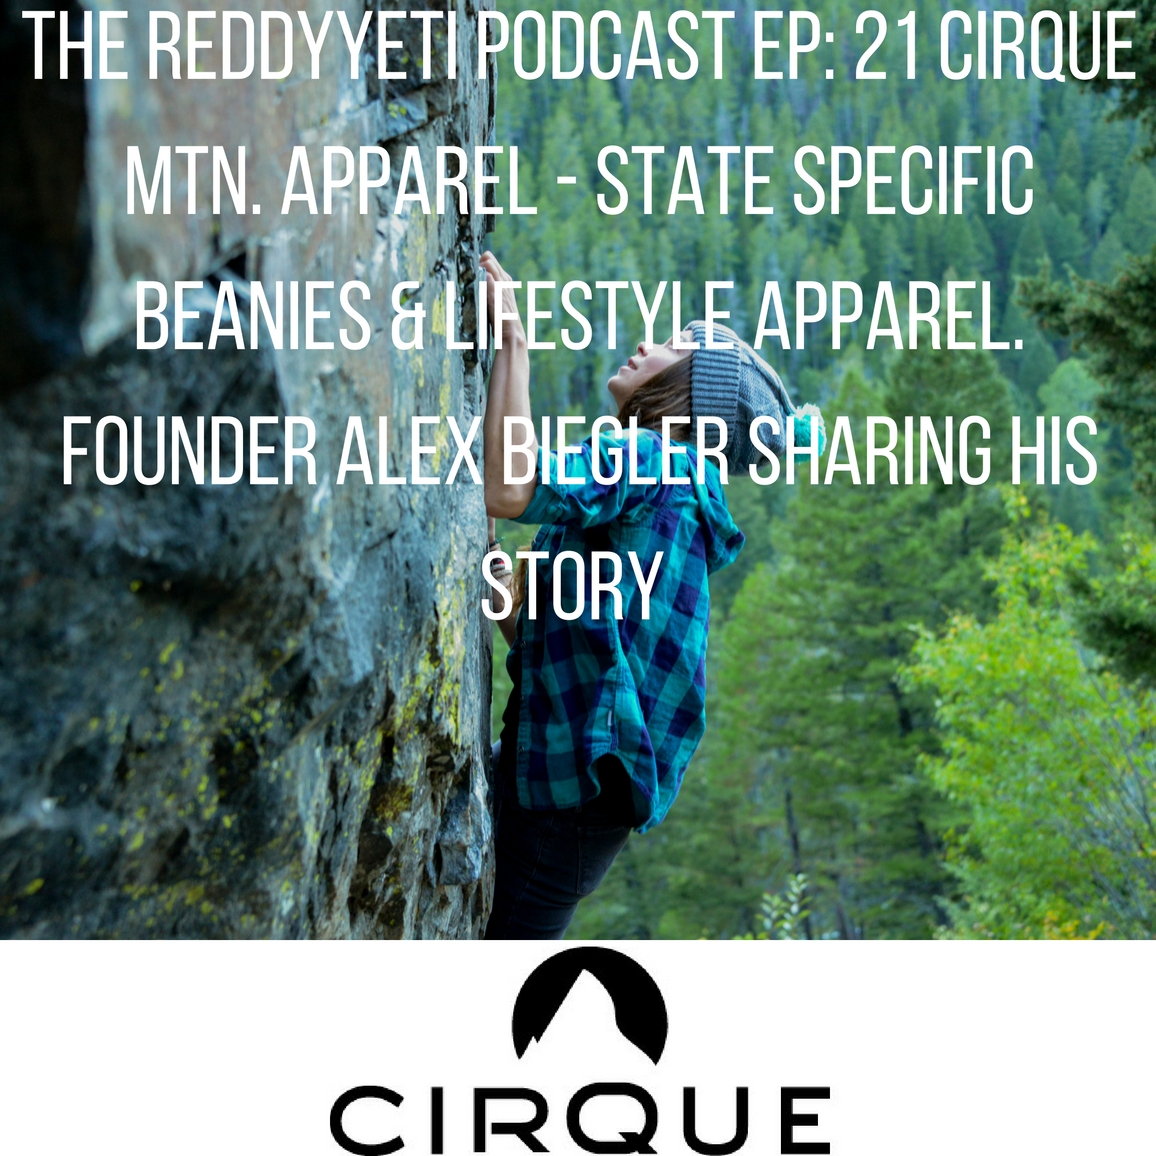 Cirque Mountain Apparel Podcast image.jpg